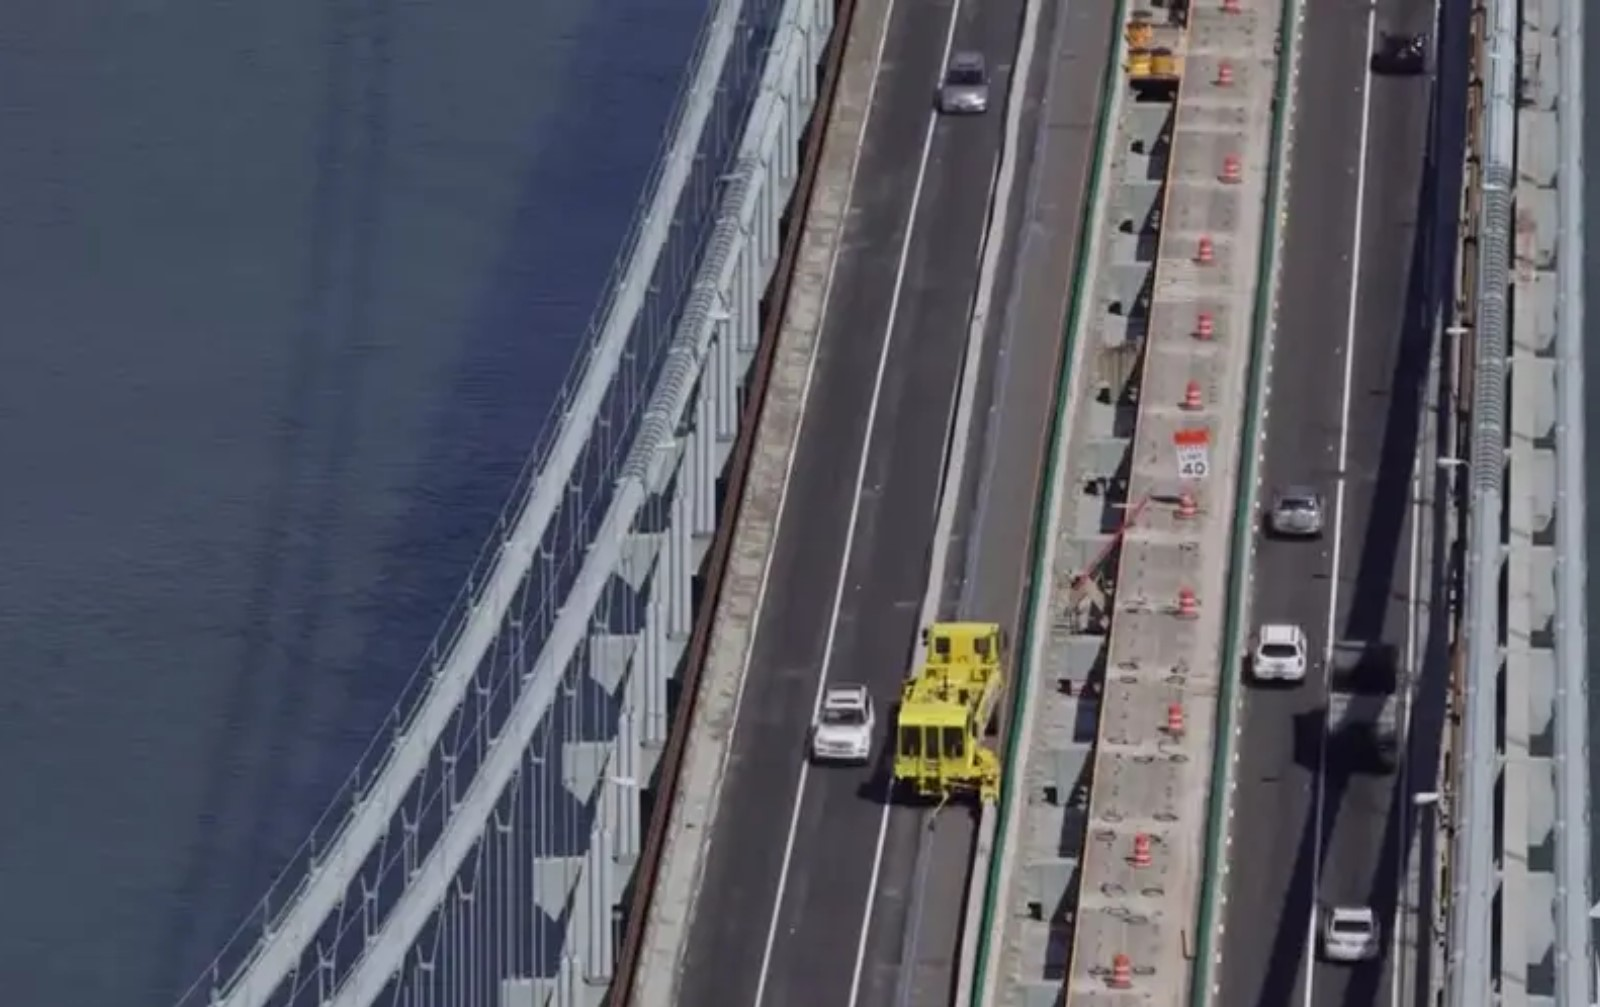 Verrazano Bridge, NY (Managed Lanes)